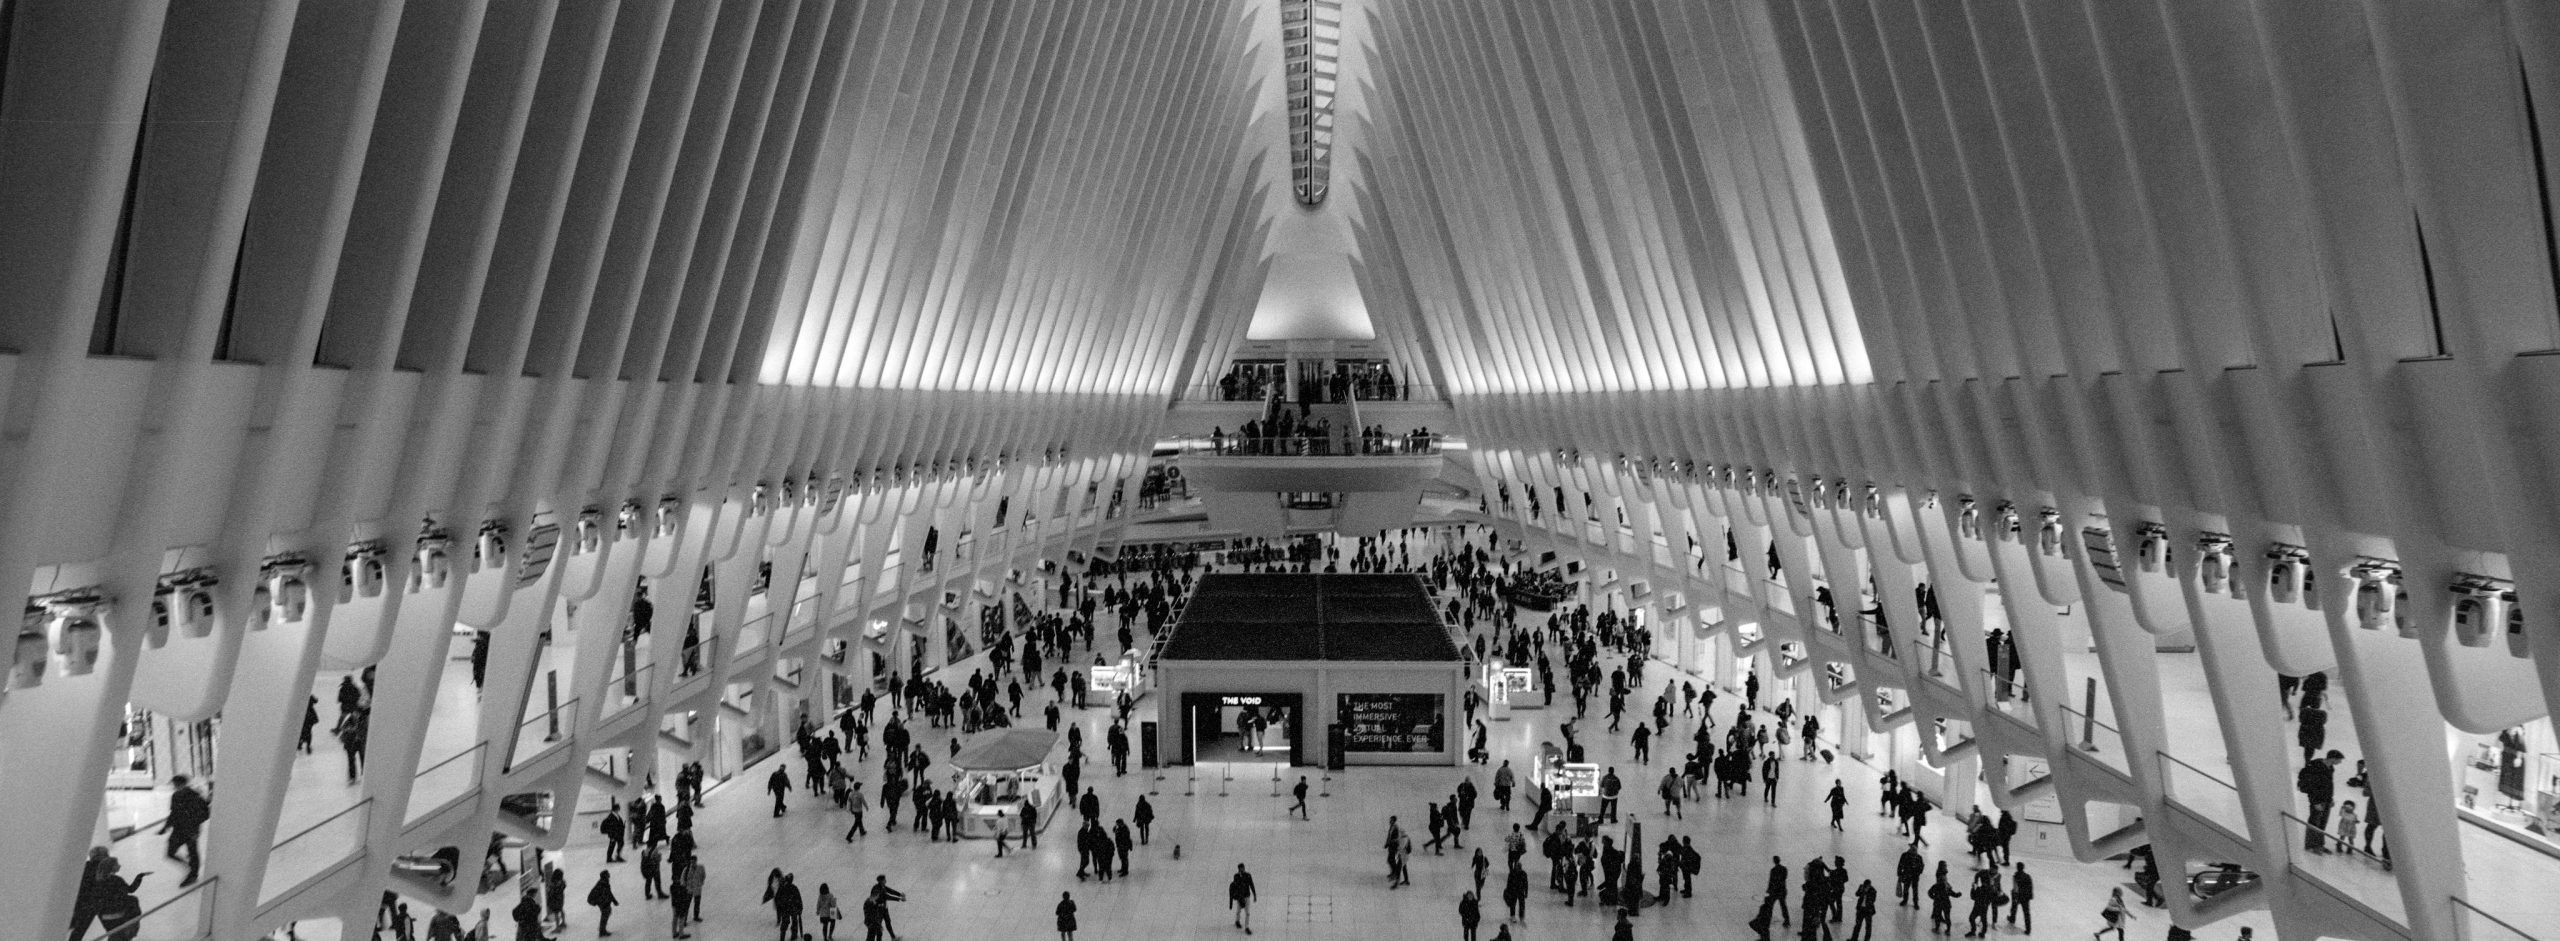 @vphill The Oculus (New York City) Fujifilm TX-1 (xpan) / 30mm f5.6 / Ilford HP5+ #ilfordphoto #fridayfavourites #panoramic